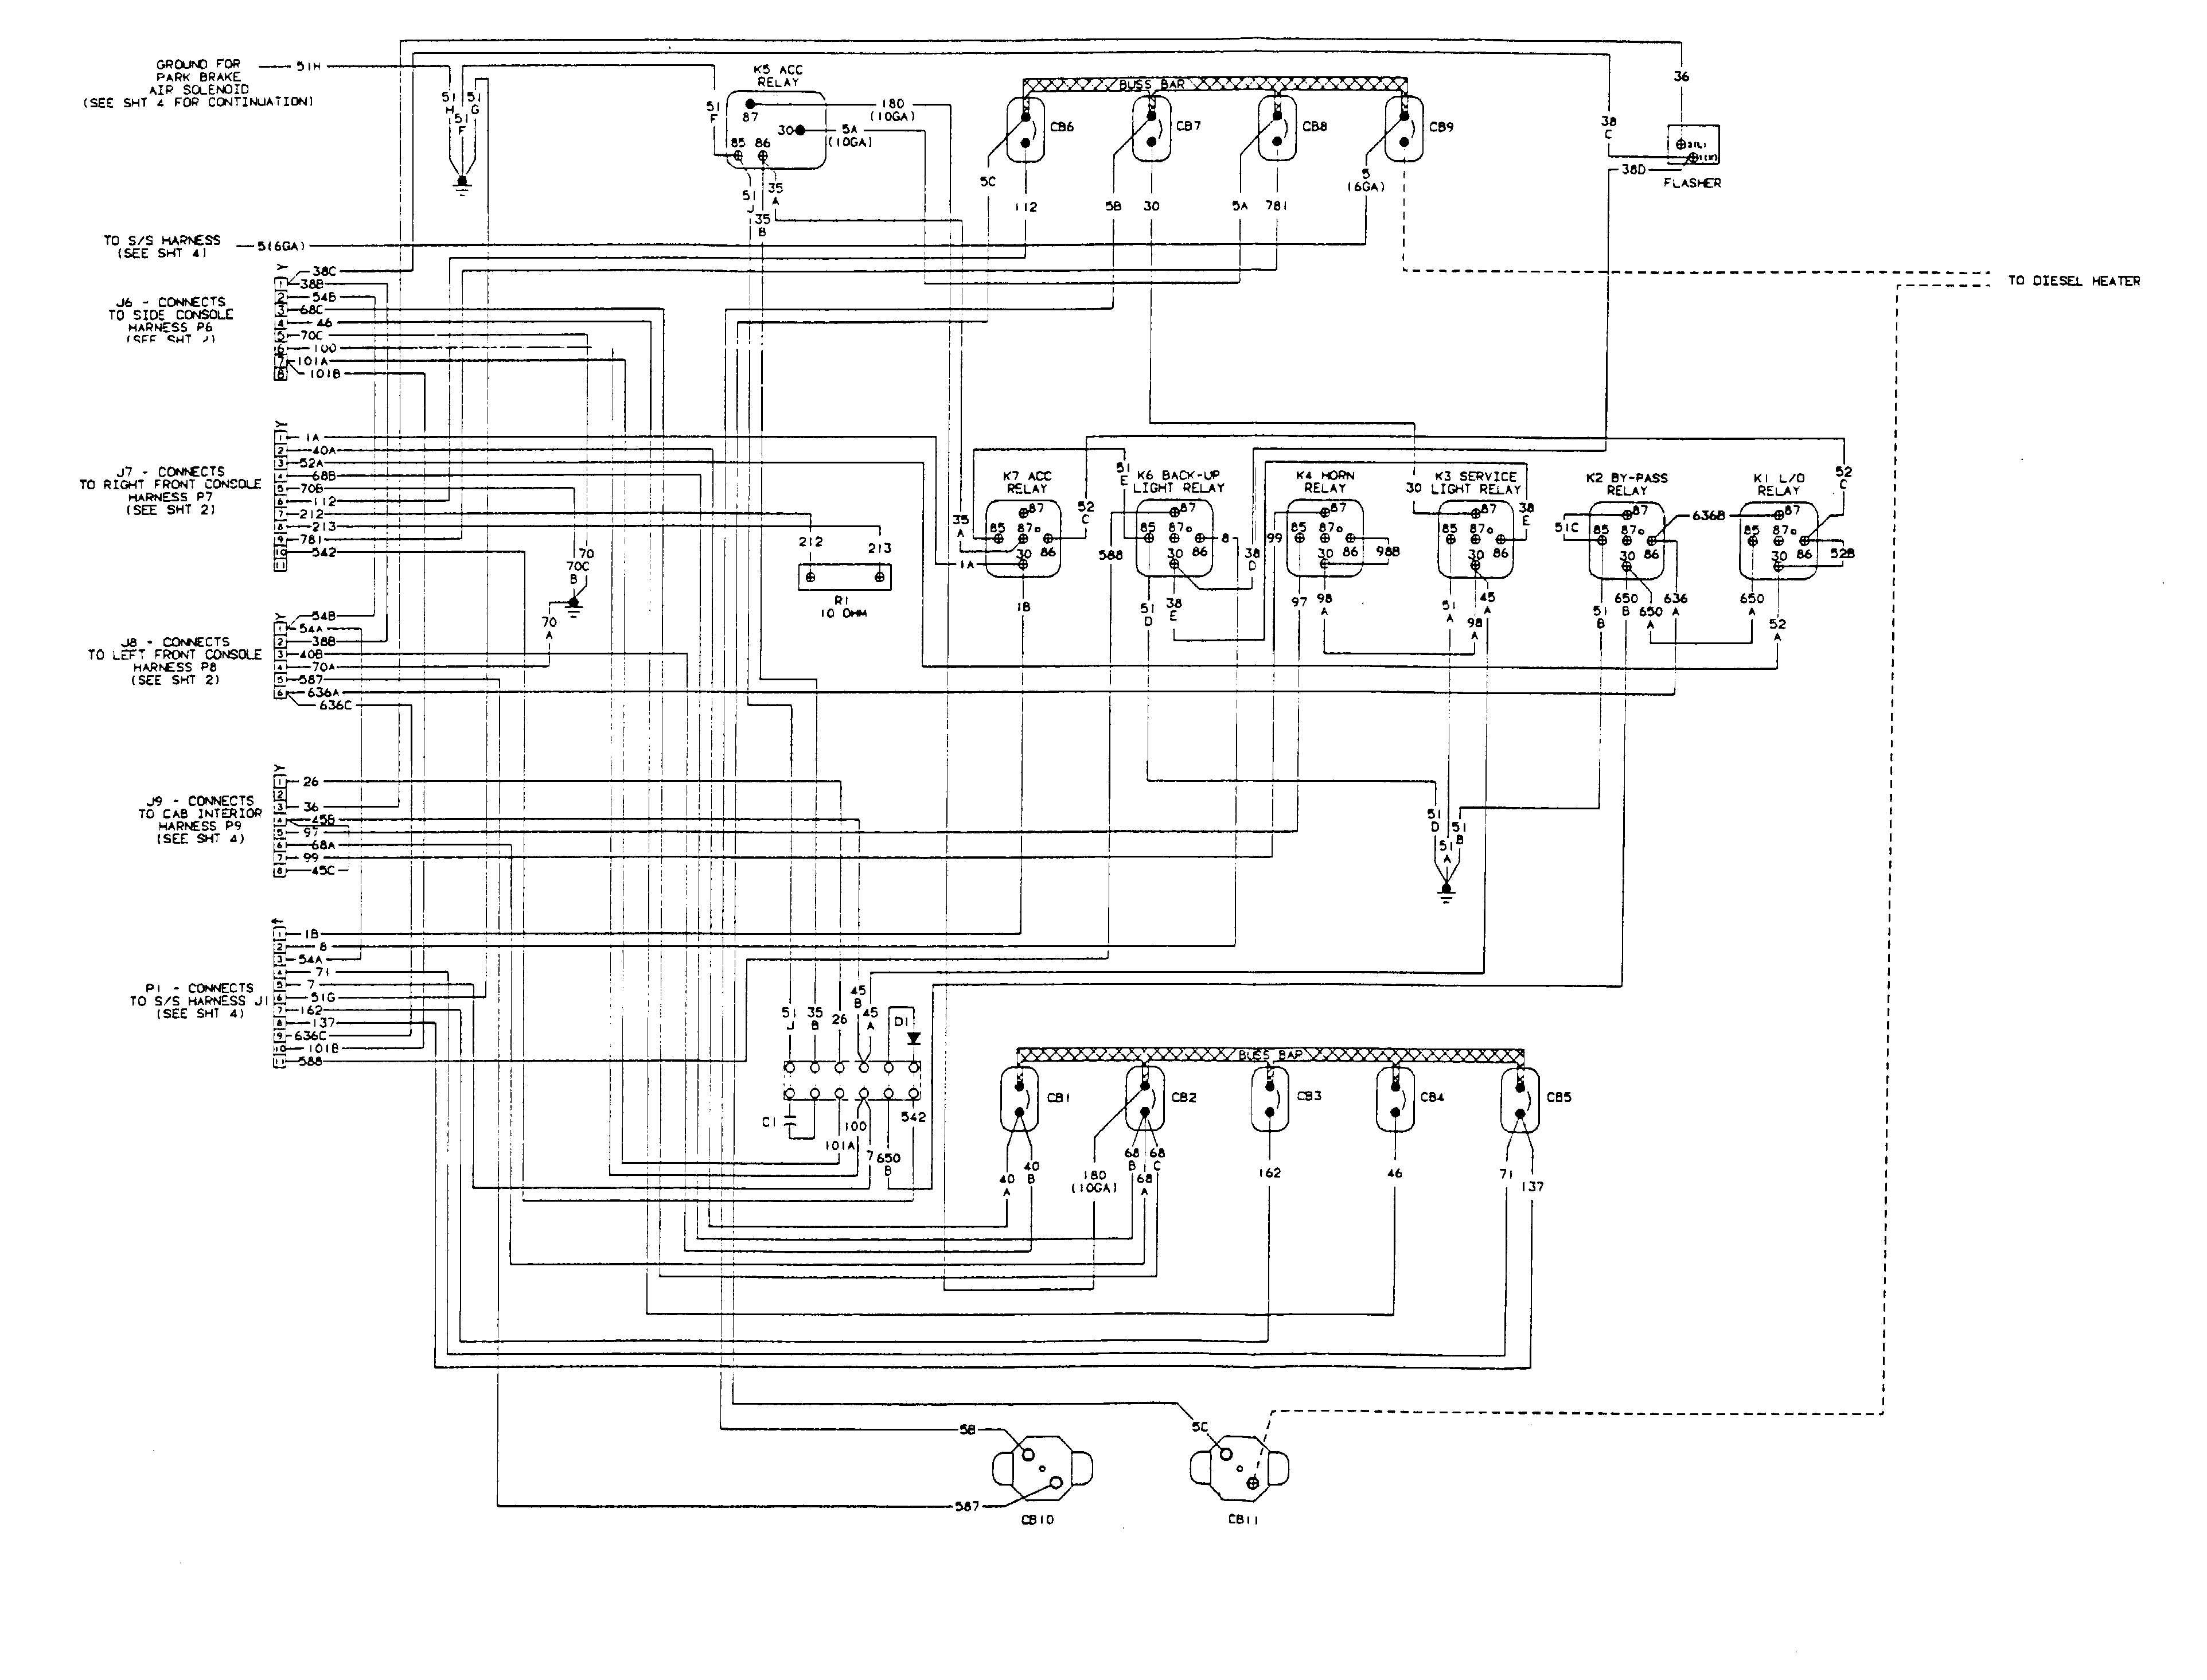 Crane Xr700 Wiring Diagram Crane Xr700 Wiring Diagram to for Mdmp 1001 02 Ignition Systems Of Crane Xr700 Wiring Diagram